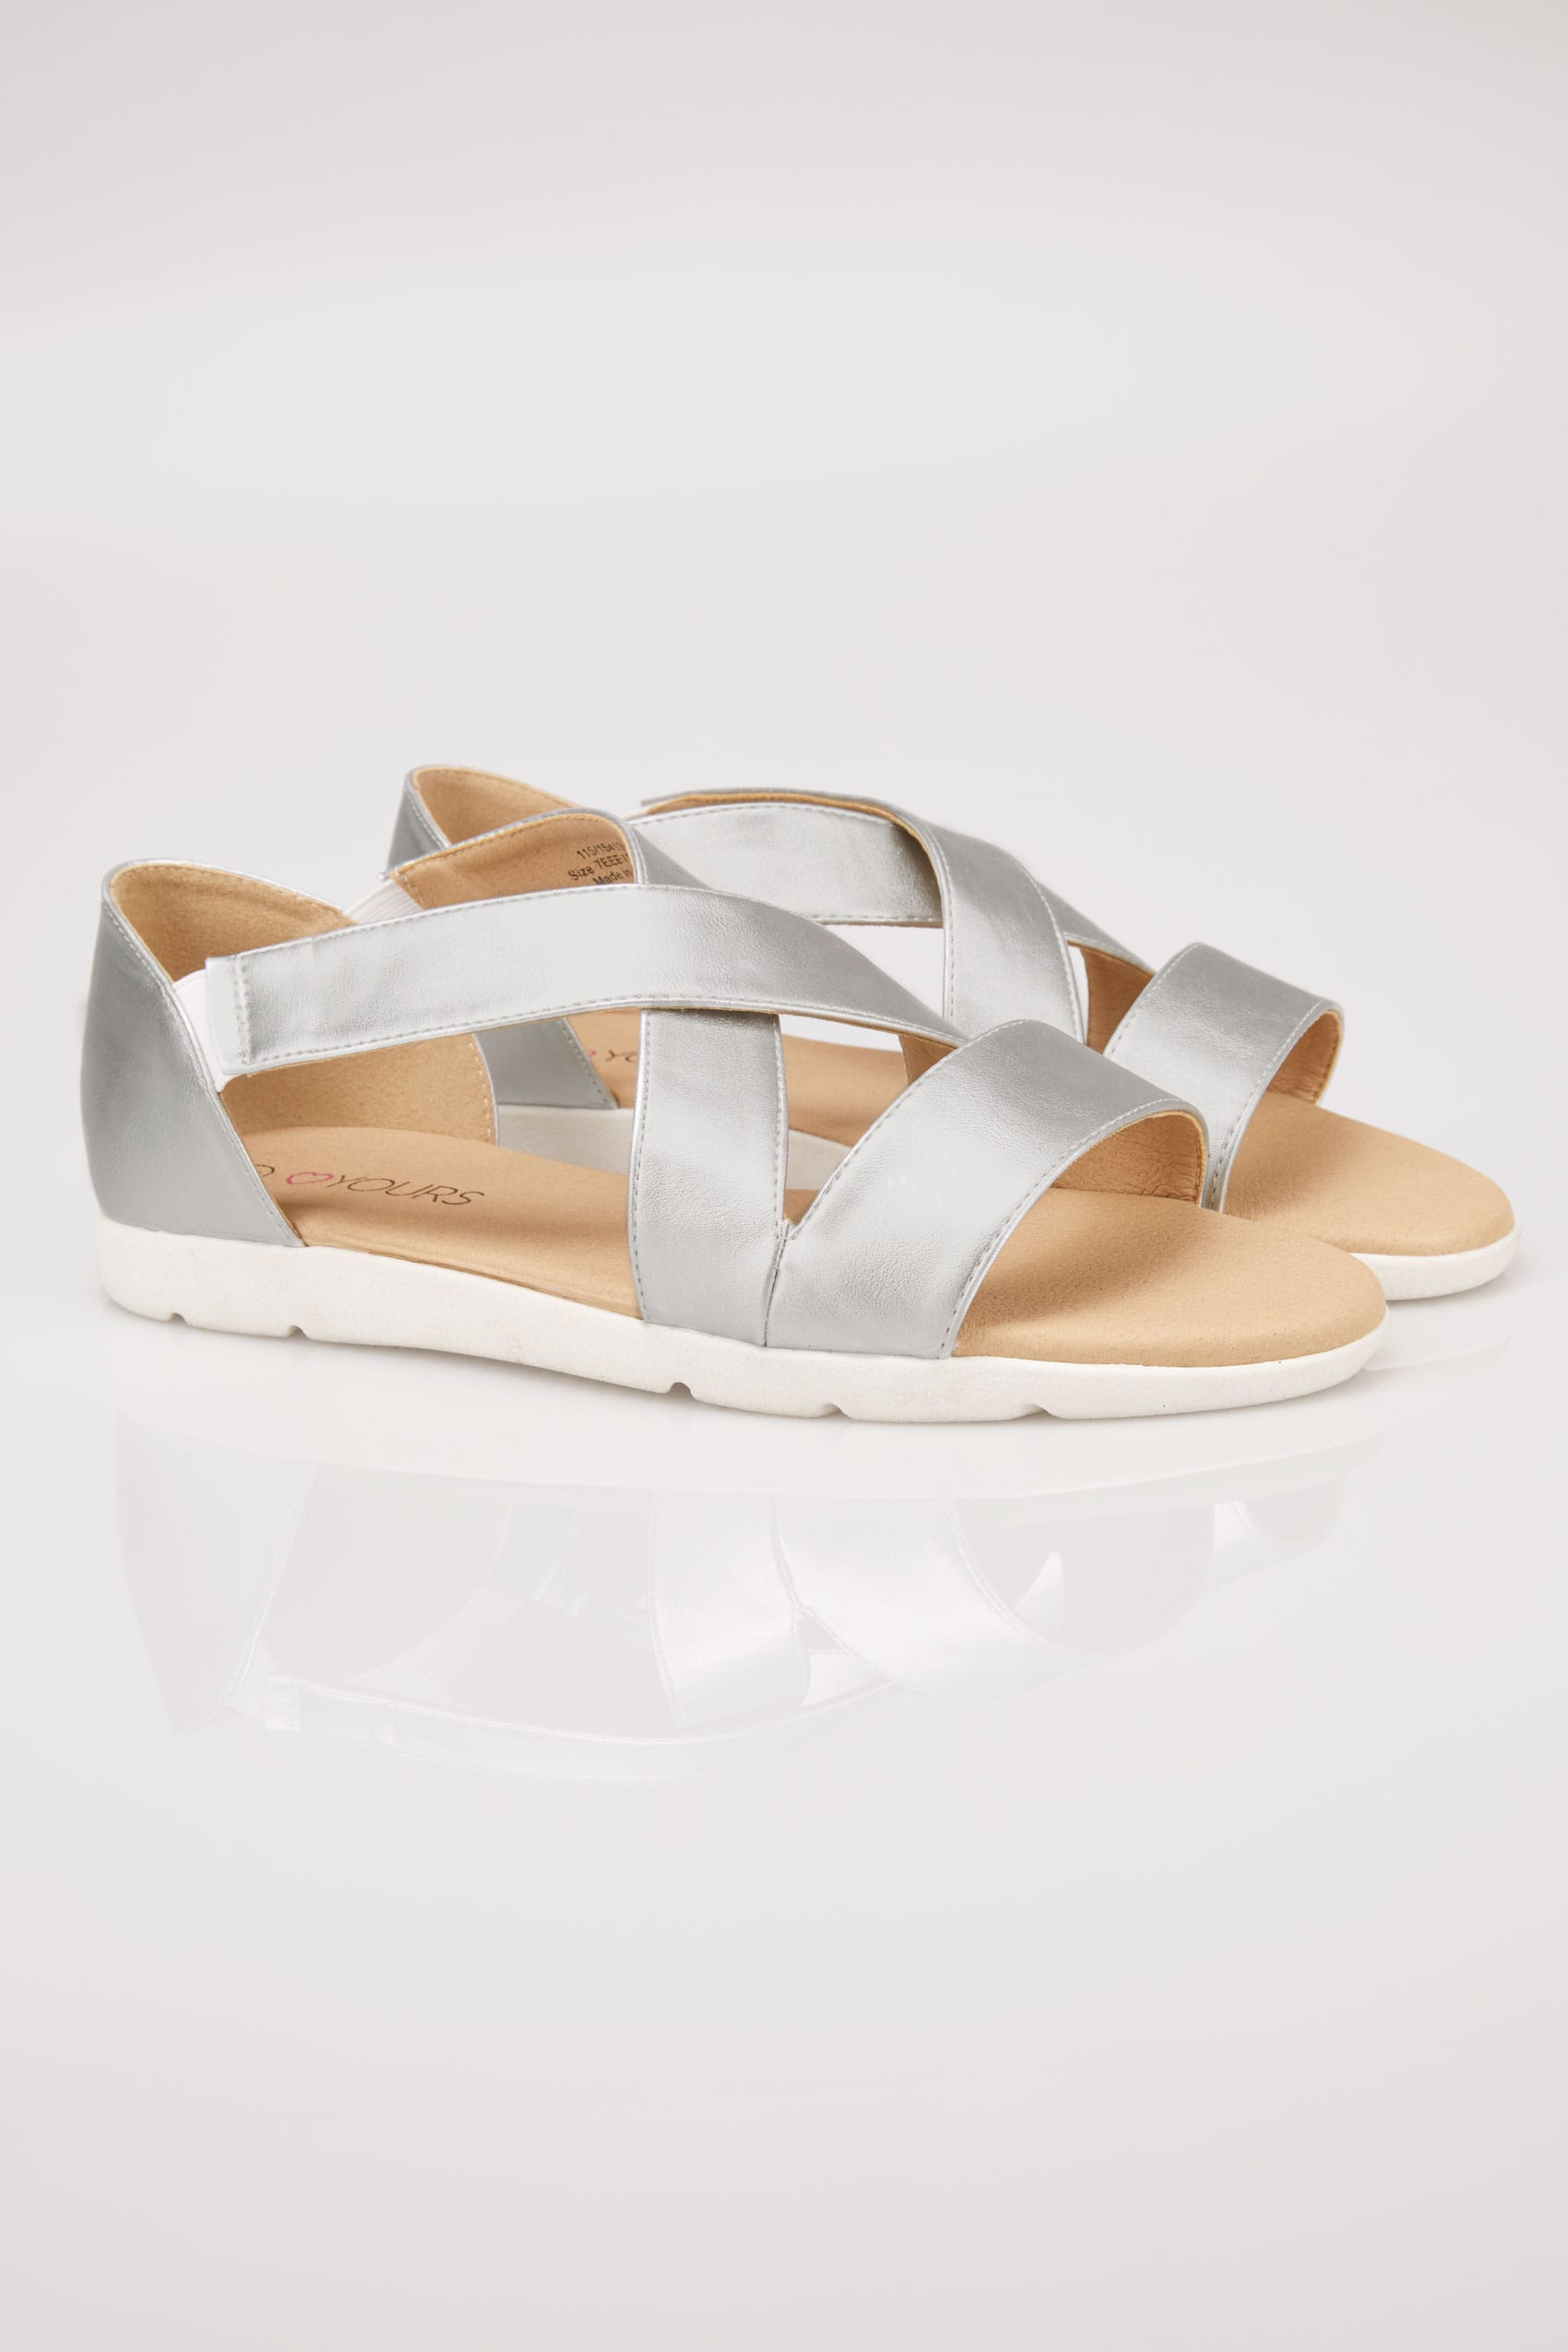 Silver Cross Over Strap Sandals In Eee Fit-8787